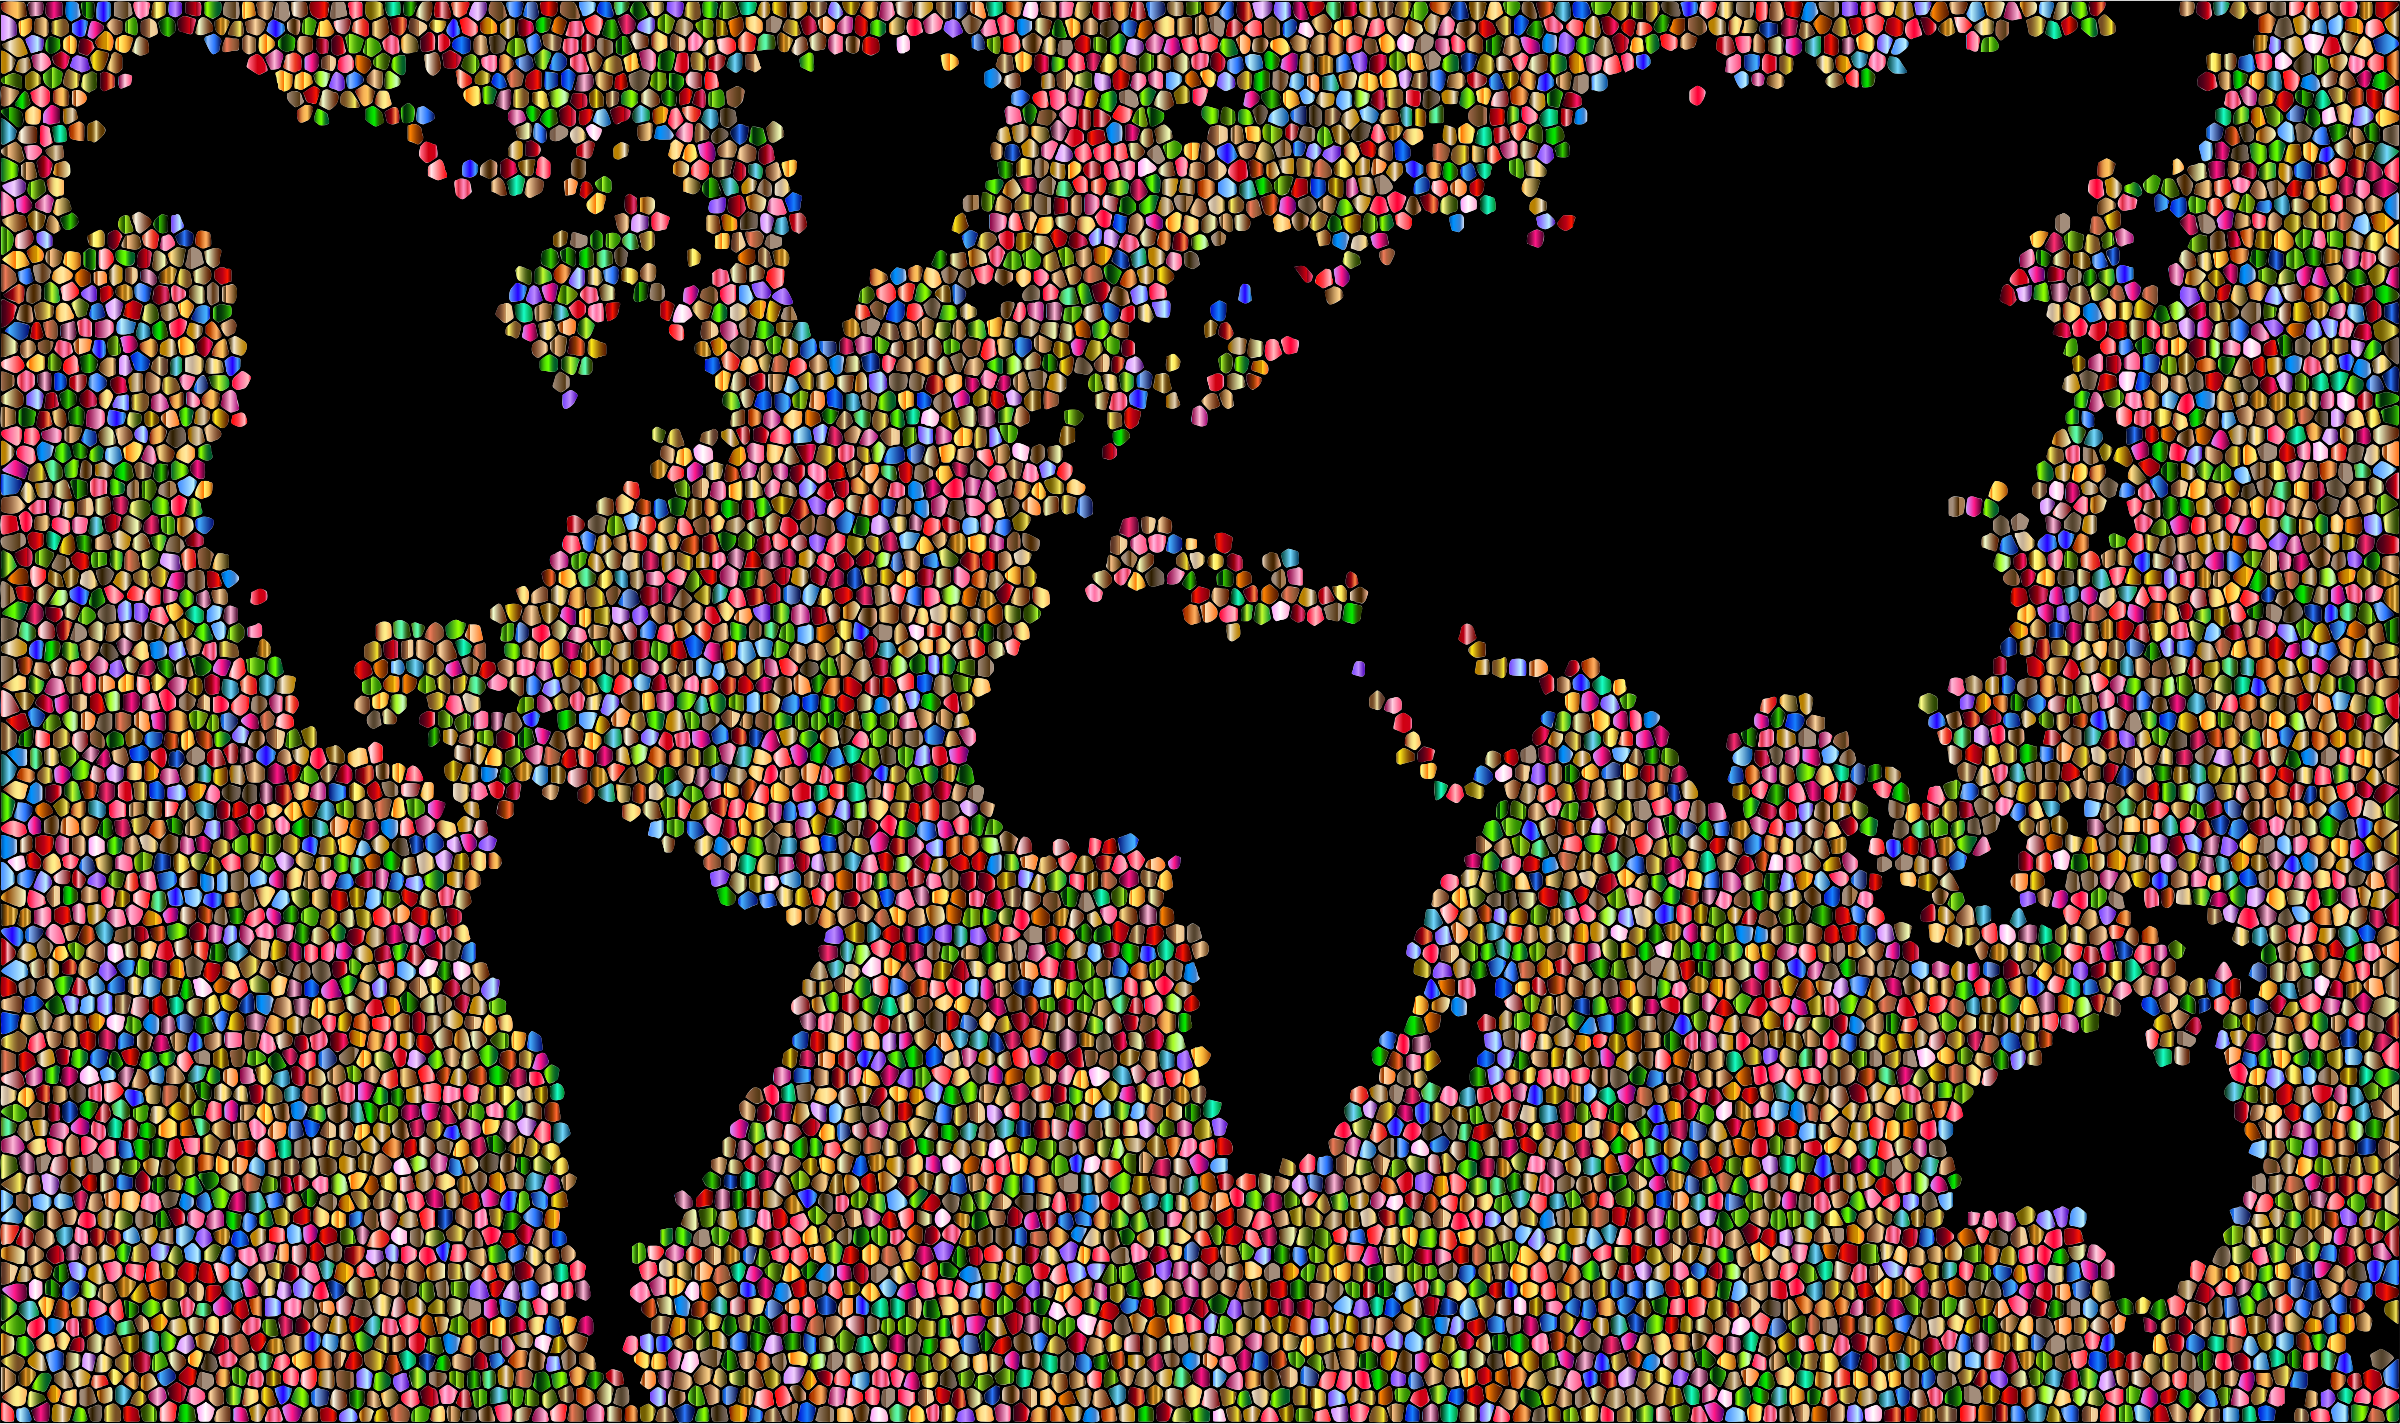 Colorful world map mosaic. Geography clipart landscape